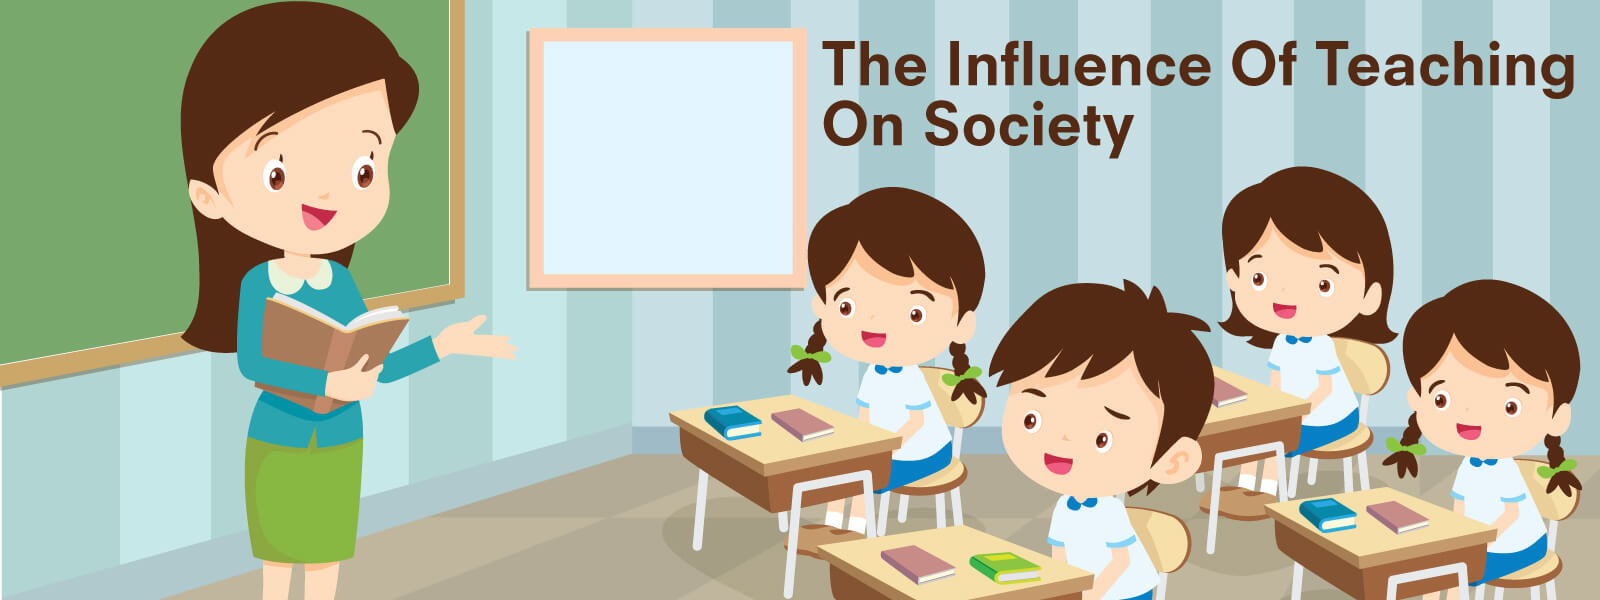 The Influence of Teaching on Society